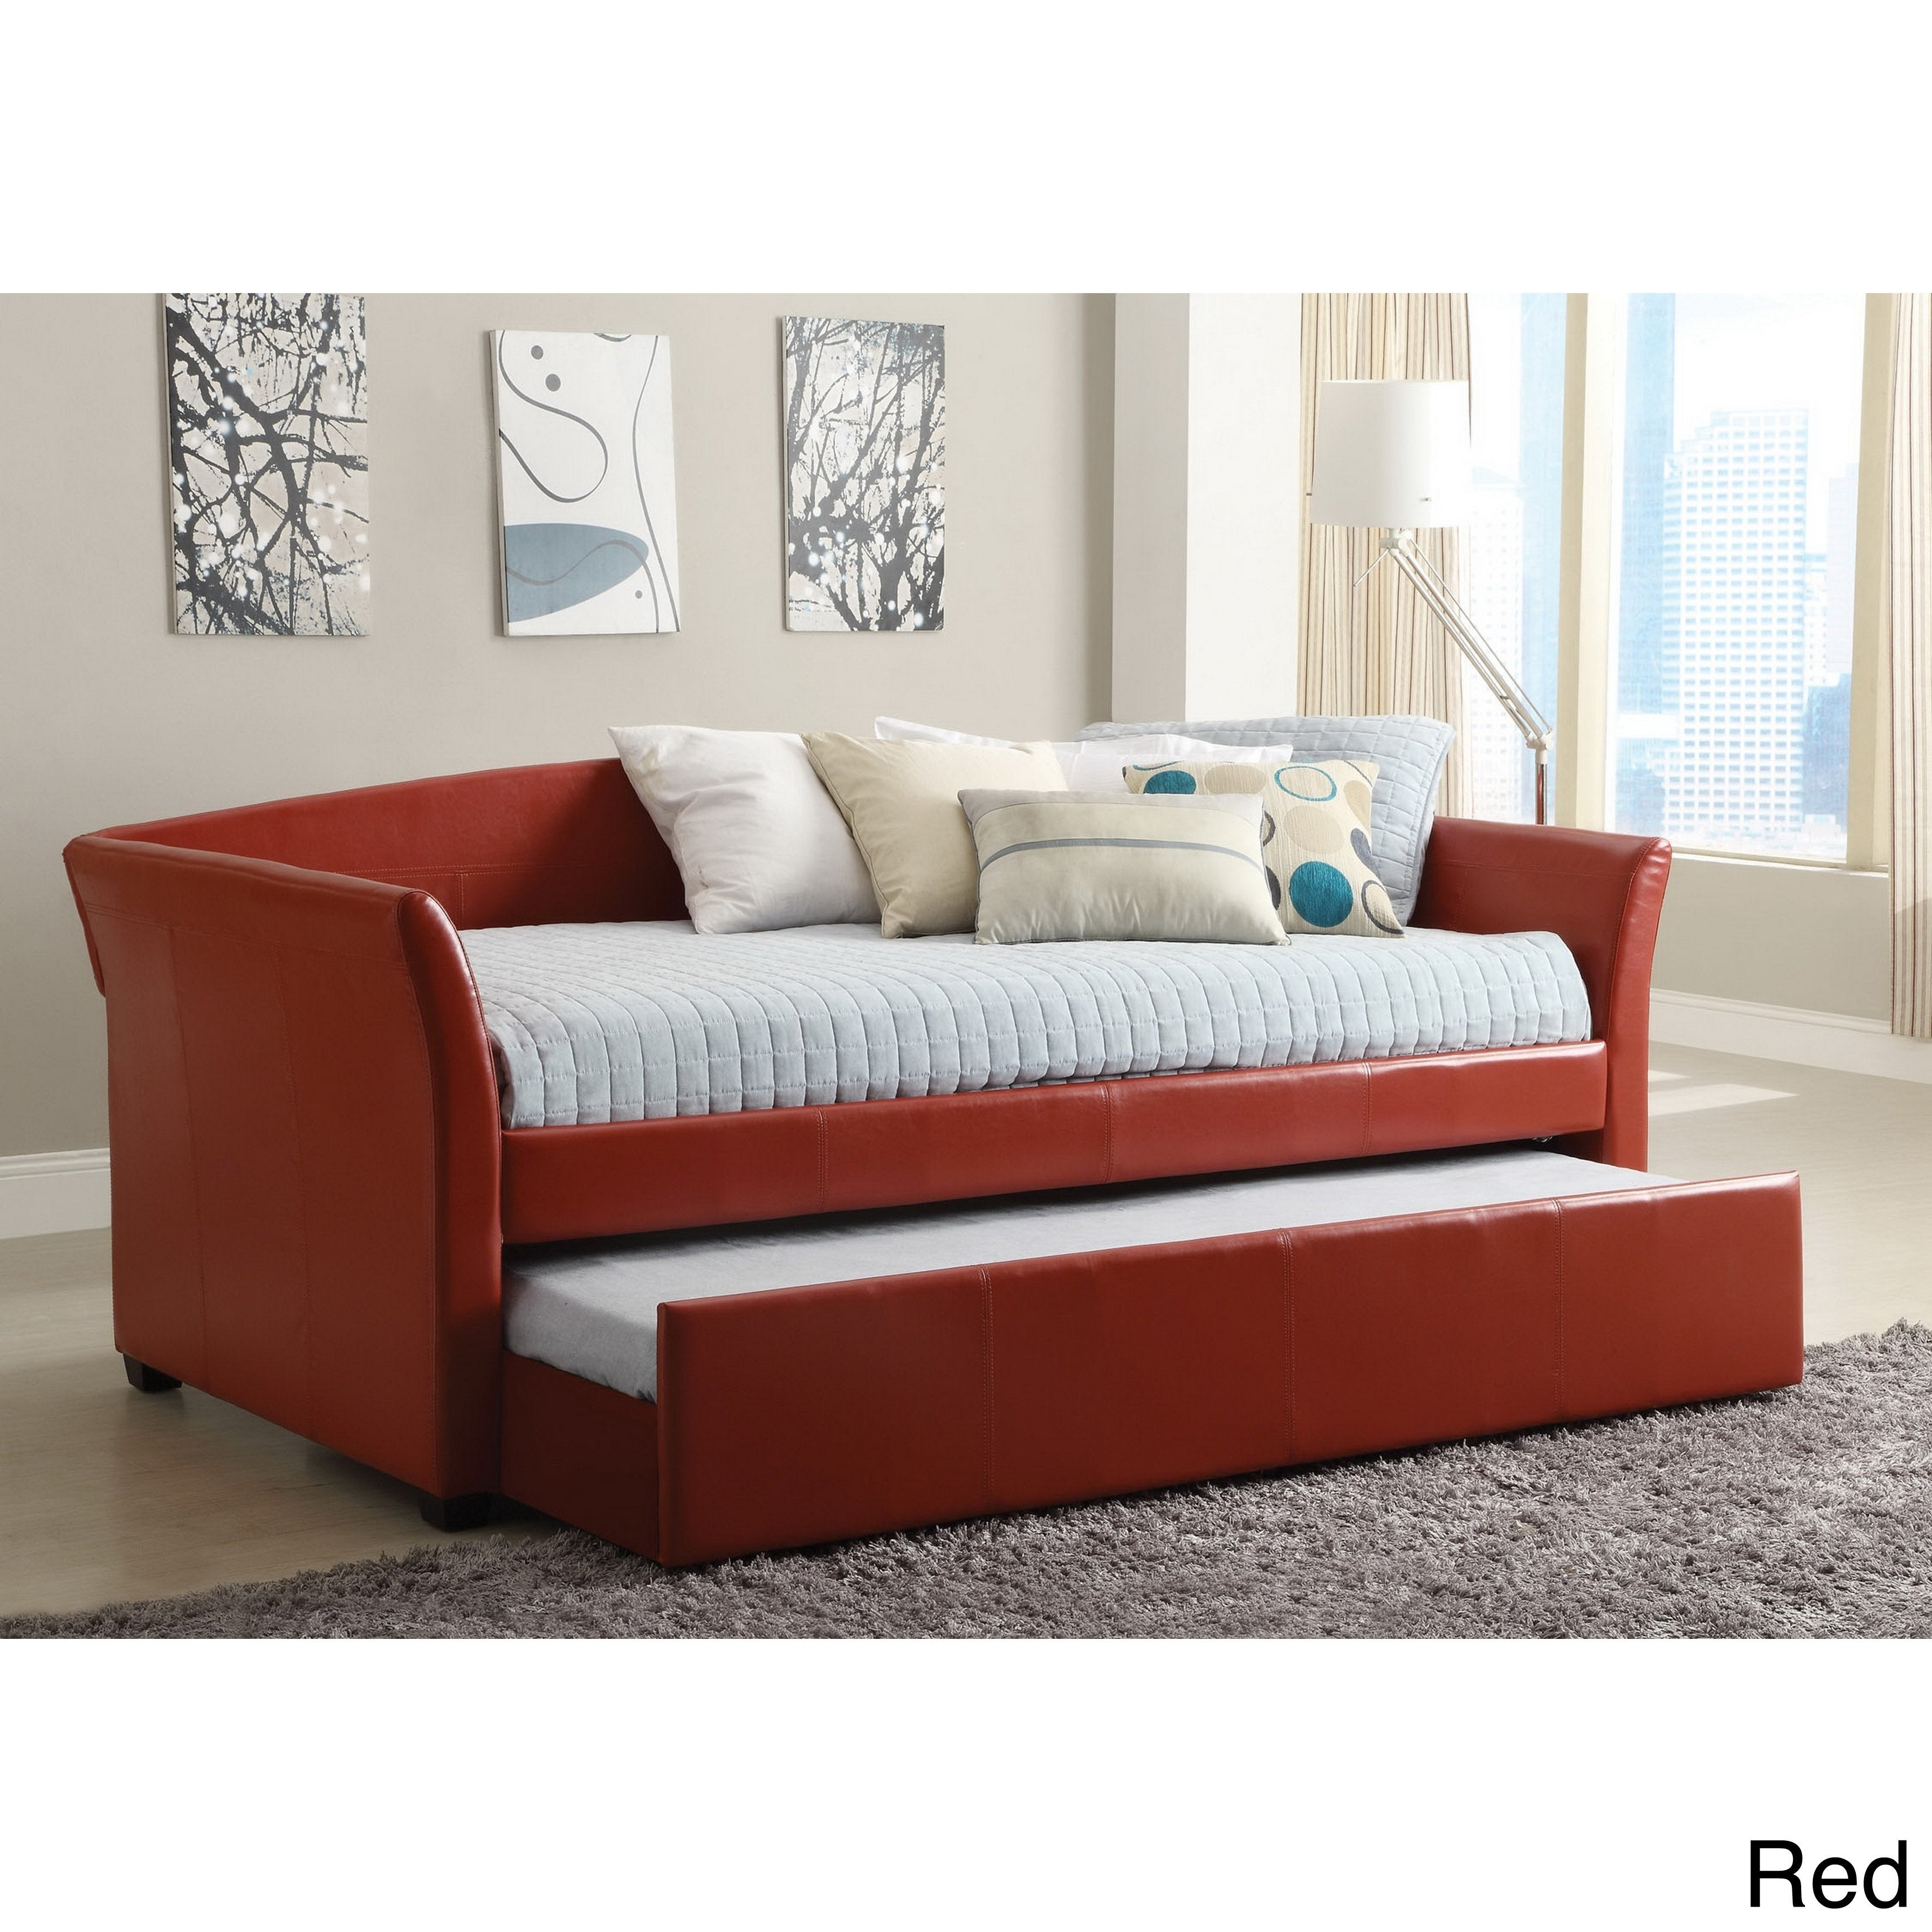 Furniture Of America Galf Twin 2 Piece Daybed With Trundle Set Overstock 7785408